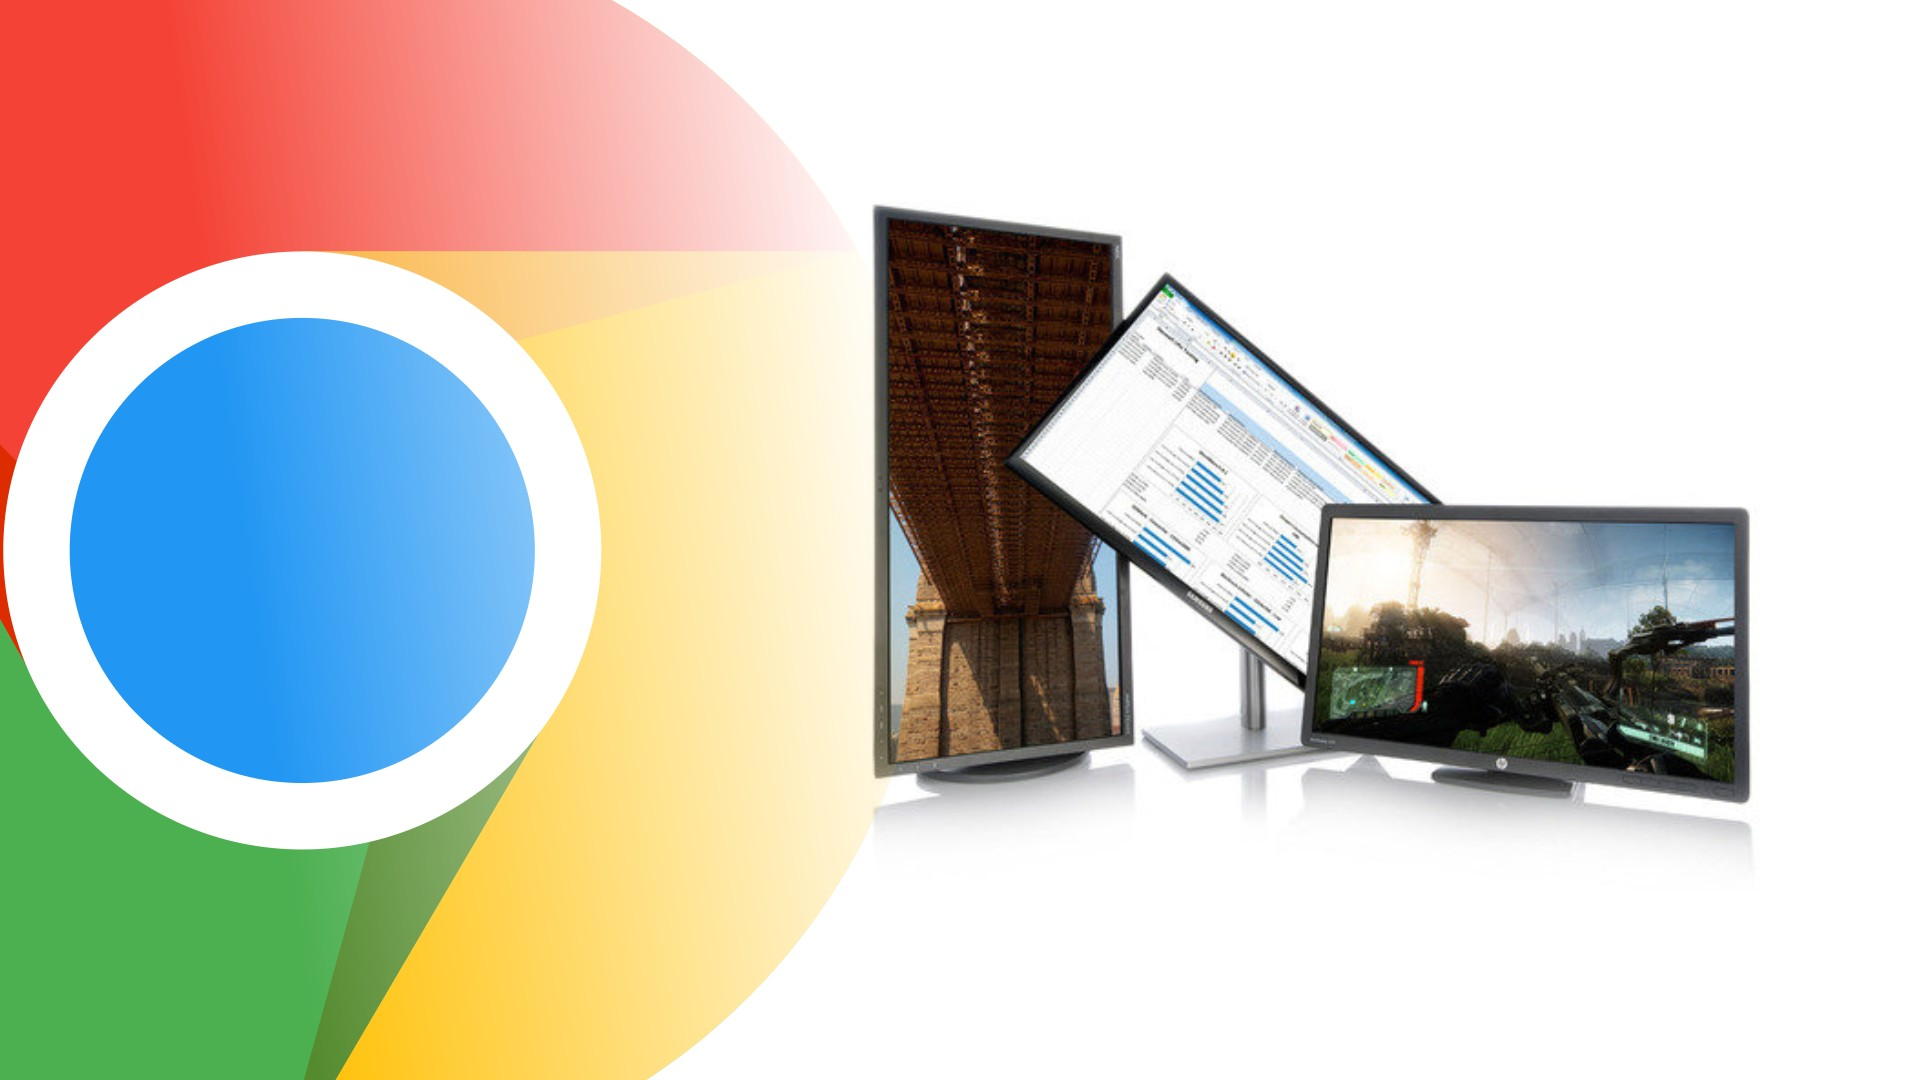 A new Chromebase 'Dooly' is in development and may come with a rotating screen